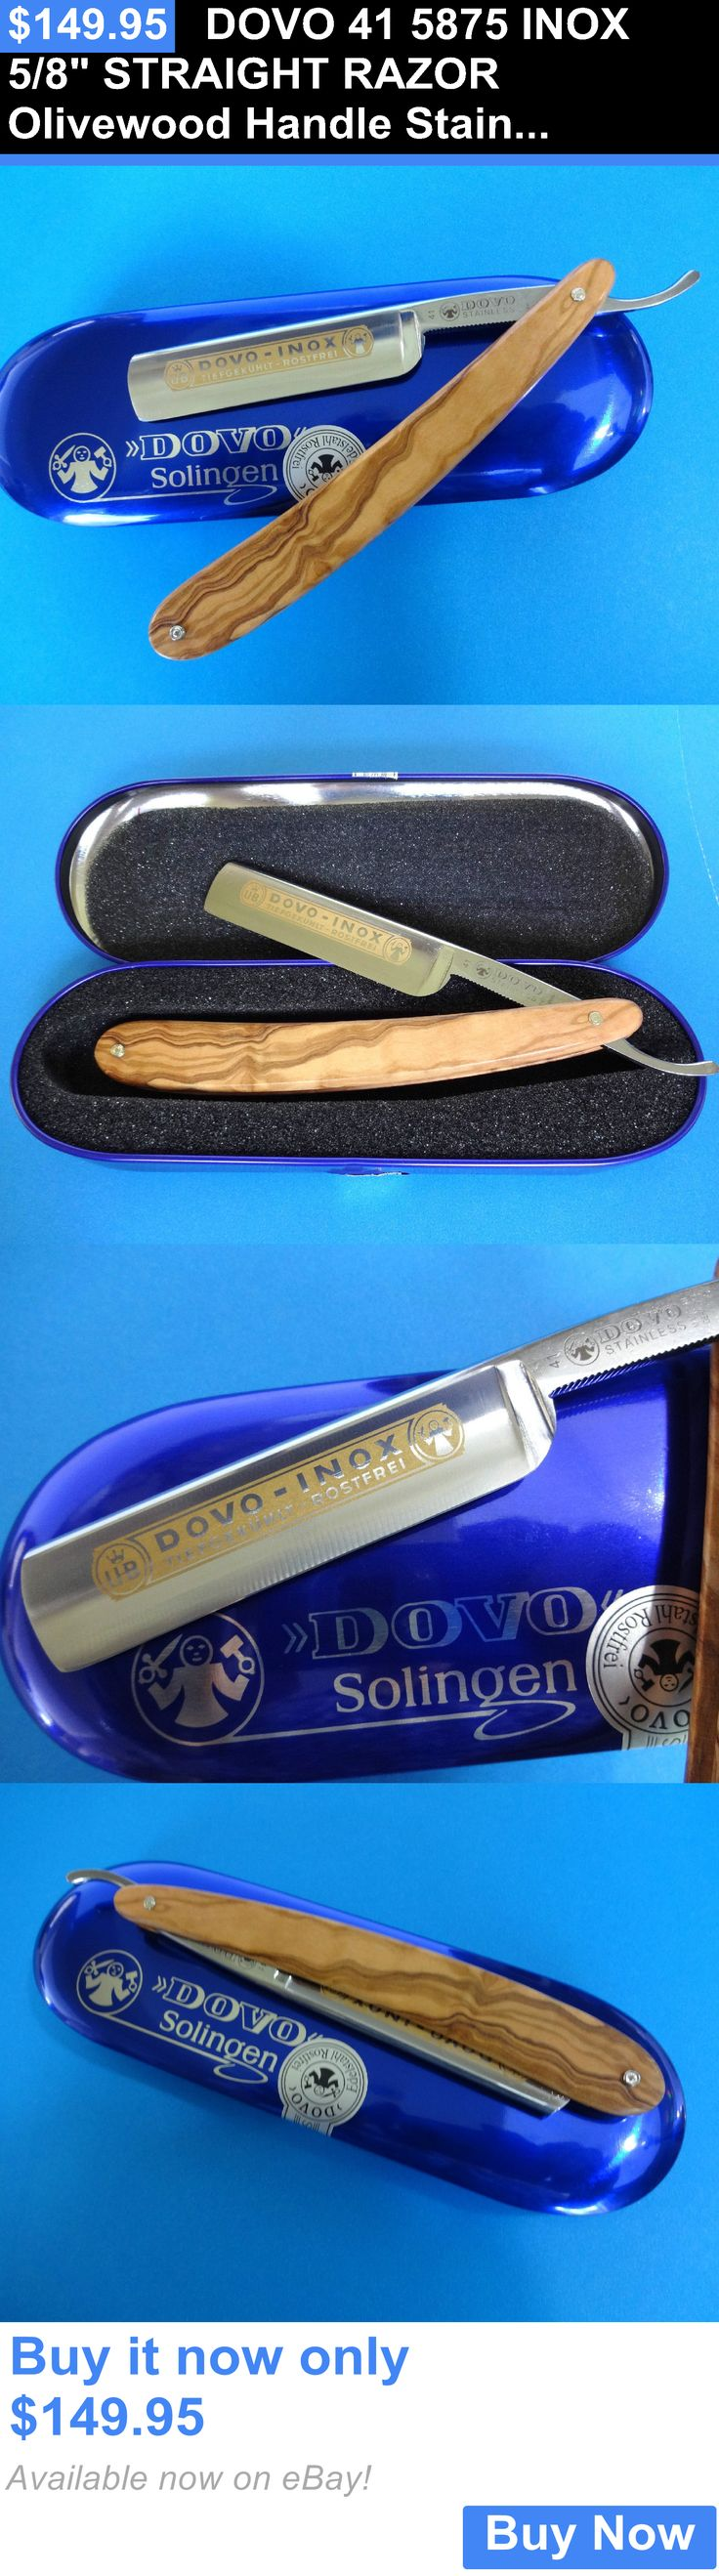 Straight Razors: Dovo 41 5875 Inox 5/8 Straight Razor Olivewood Handle Stainless Solingen Blade BUY IT NOW ONLY: $149.95